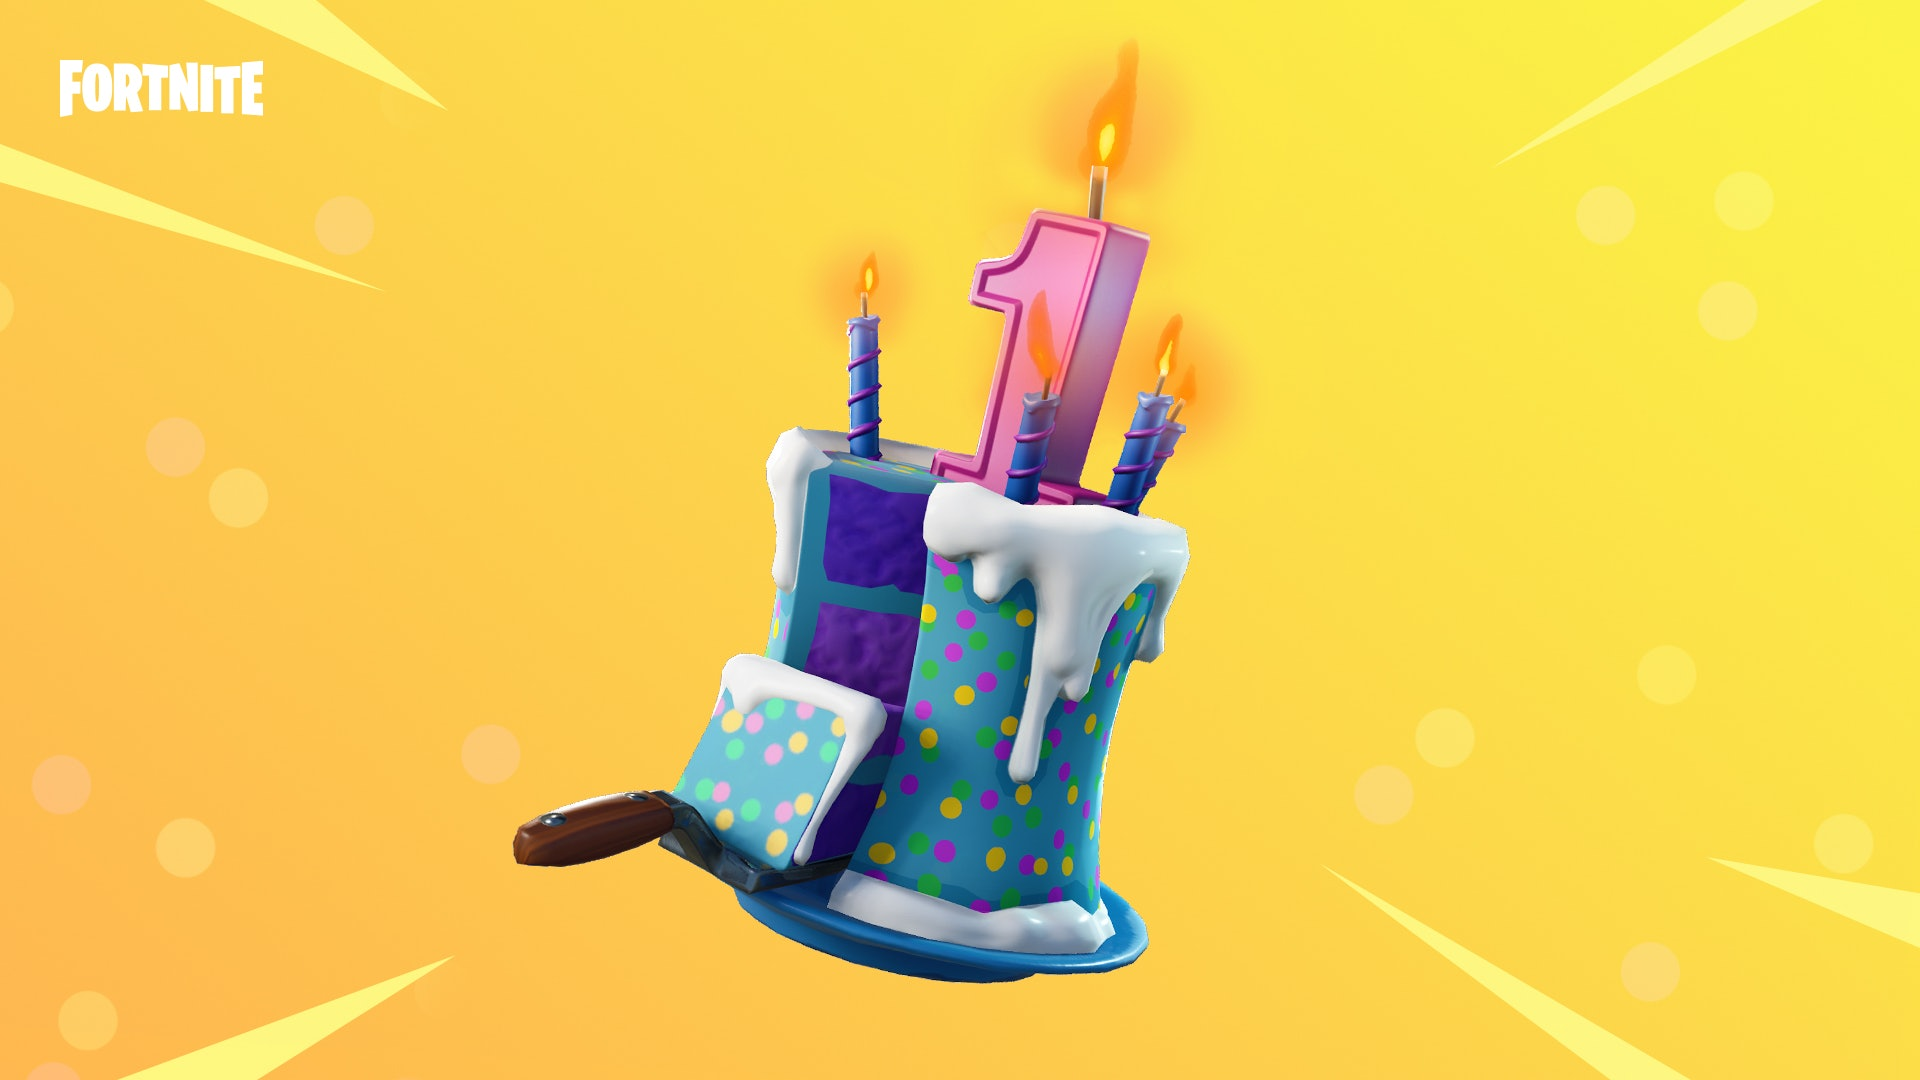 Only the top tier of the birthday cakes looks like this in 'Fortnite: Battle Royale'.